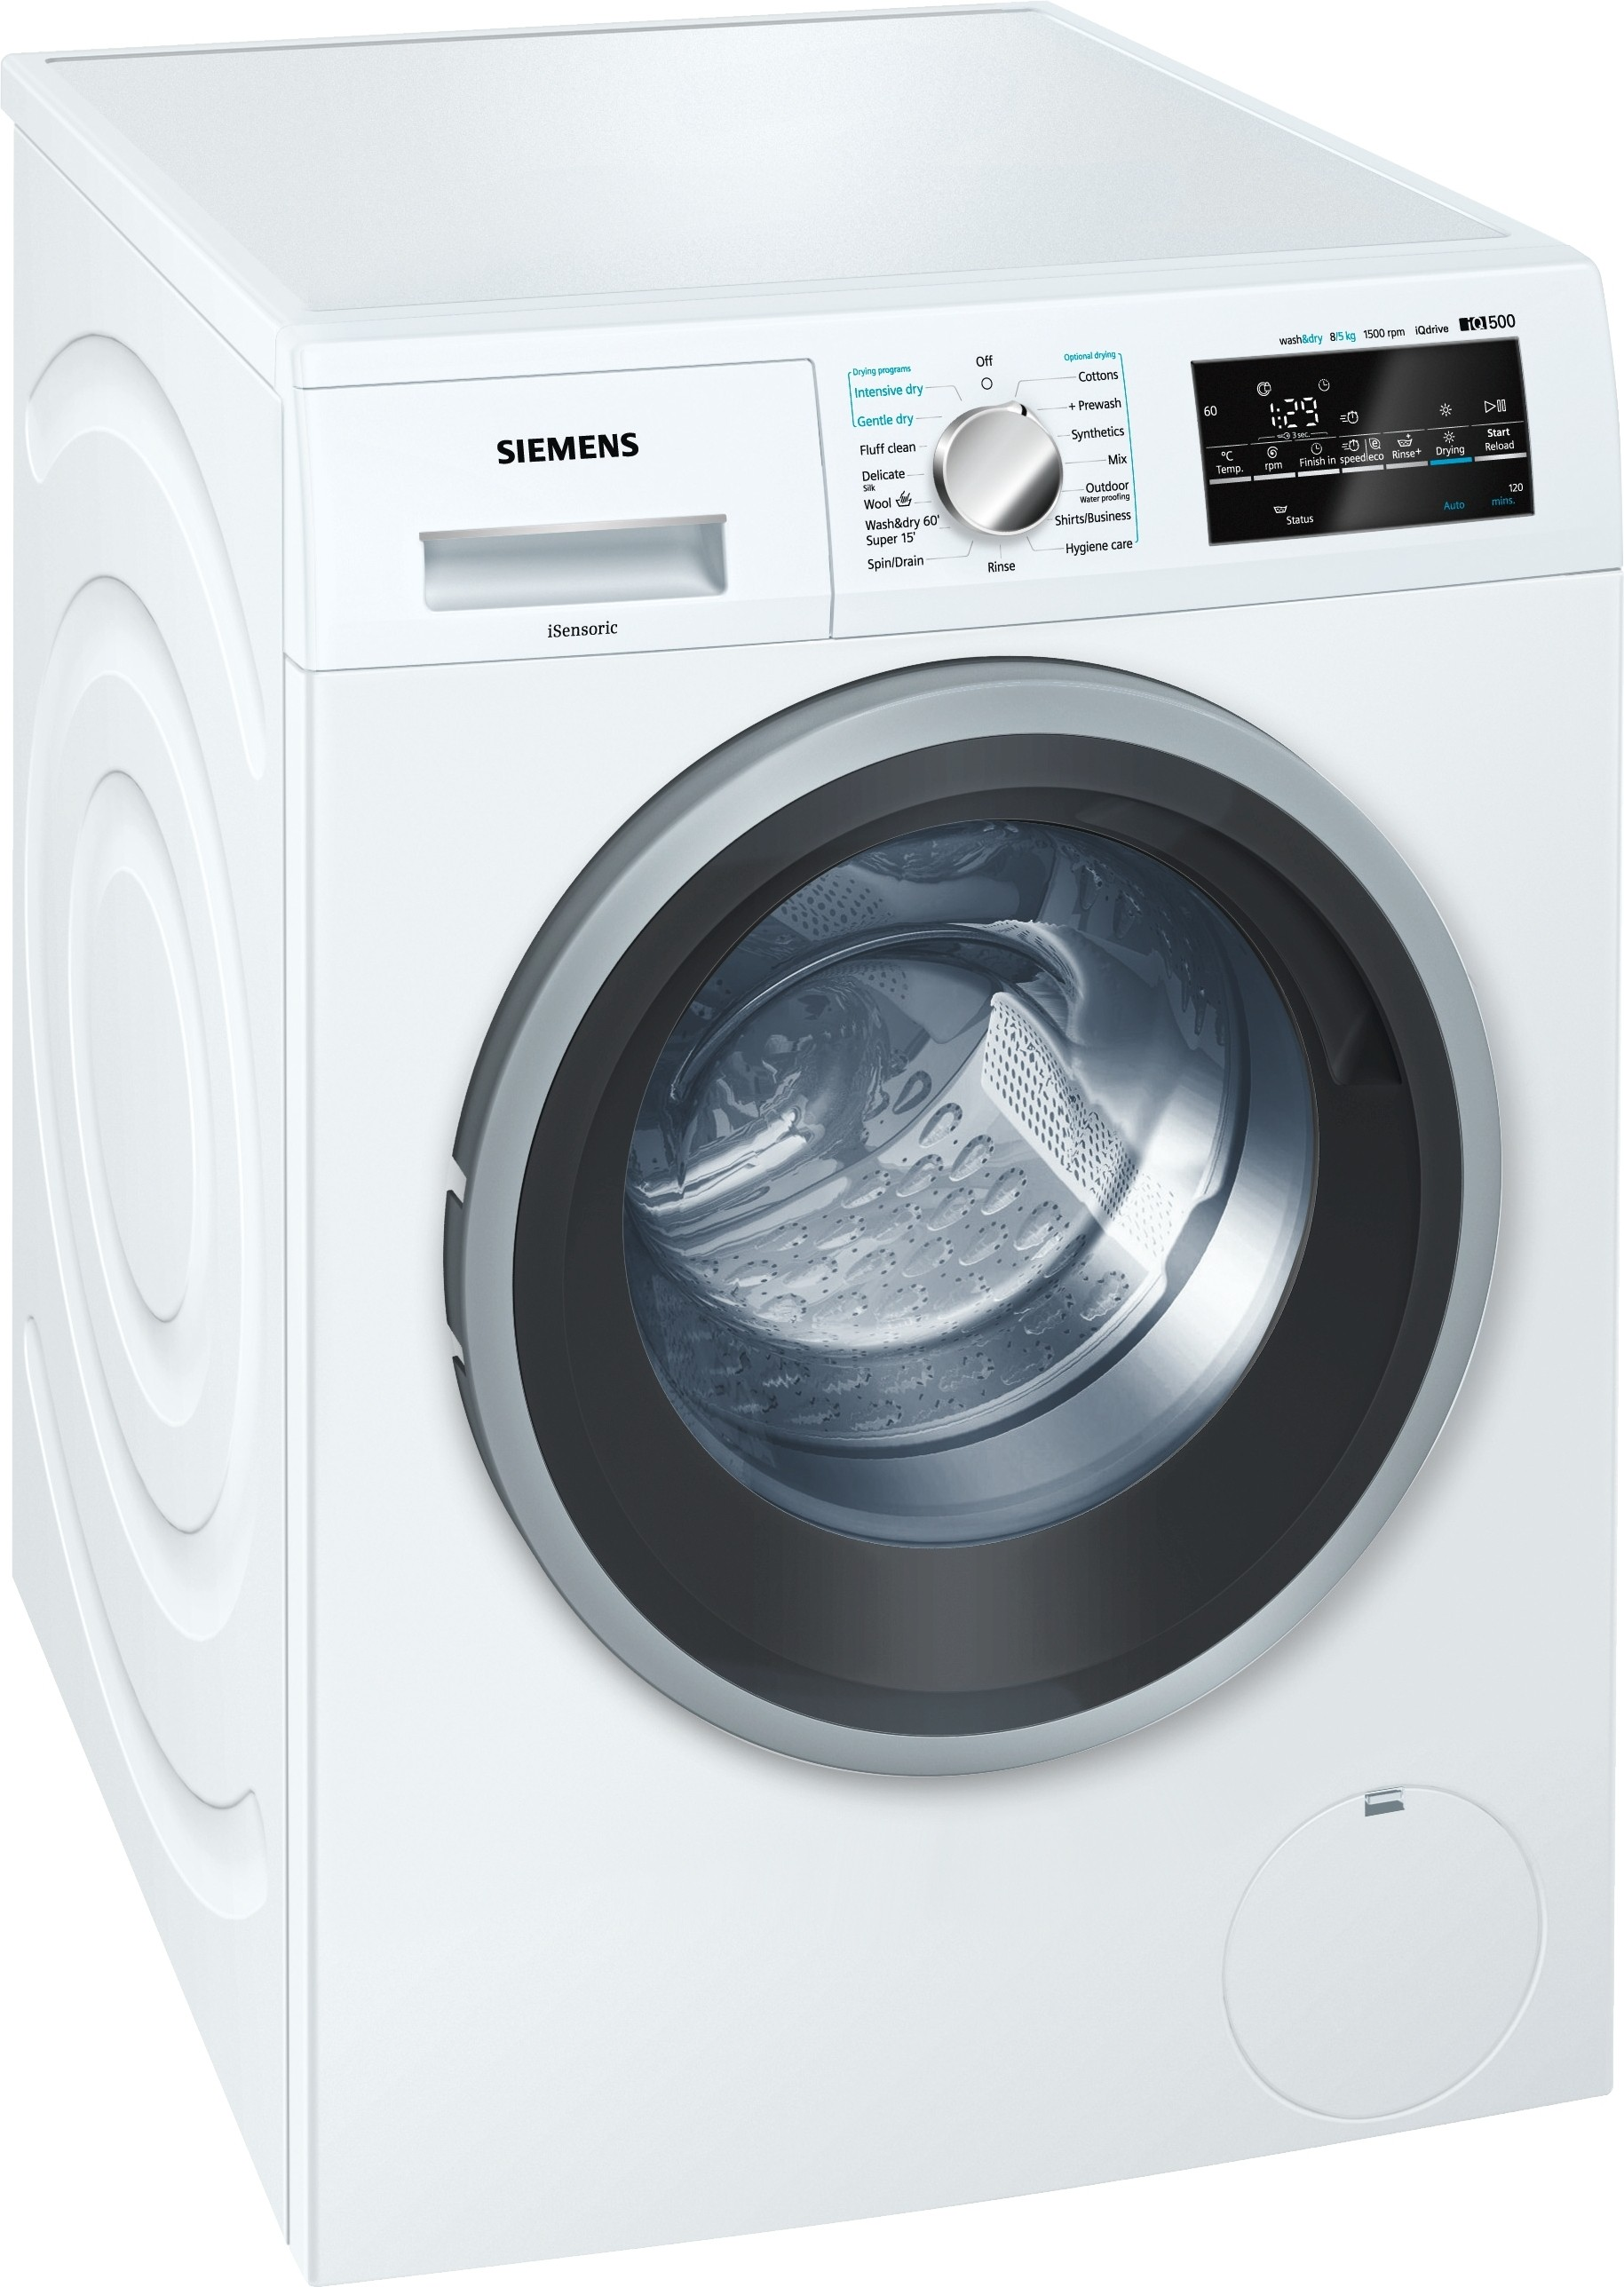 Siemens 8 kg Fully Automatic Front Load Washer with Dryer(WD15G460IN) (Siemens)  Buy Online